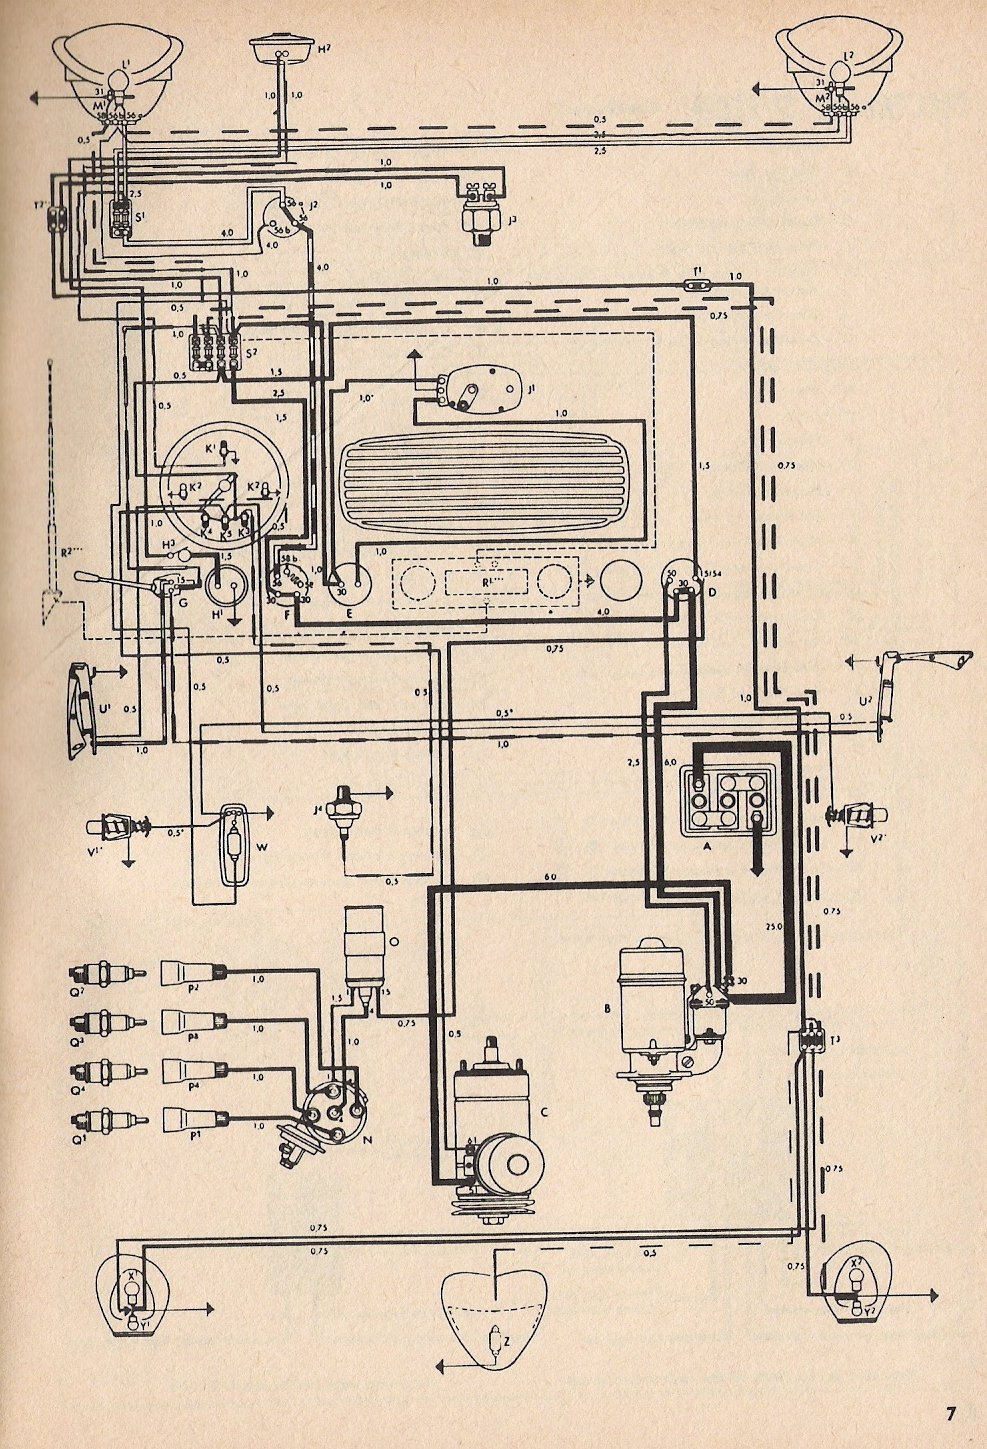 bug_54 thesamba com type 1 wiring diagrams wiring diagram for 1972 vw beetle at sewacar.co